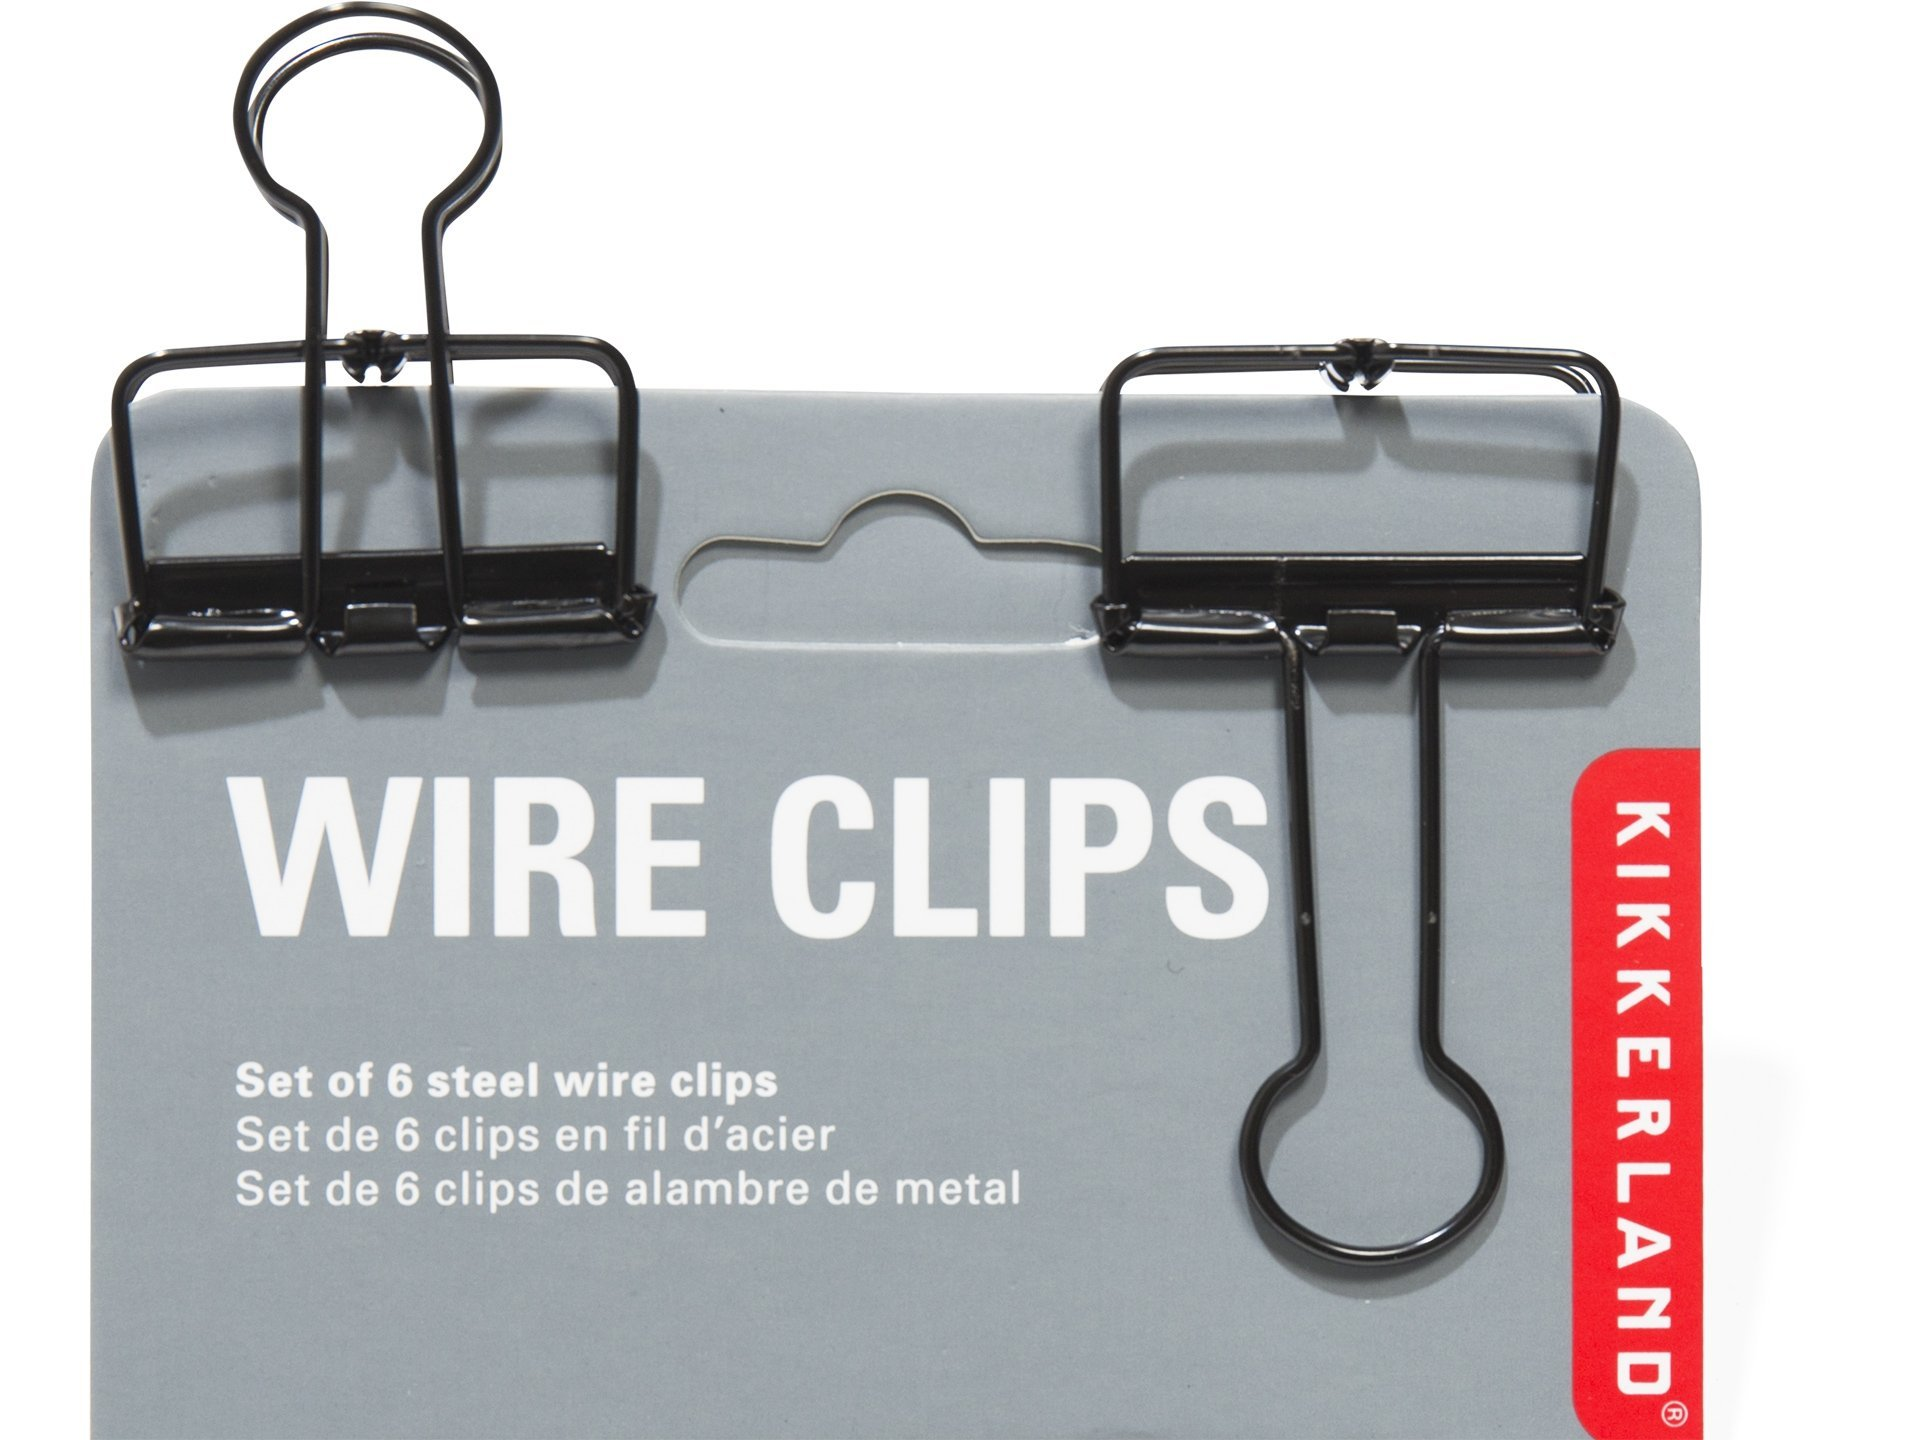 7 1920 1440 wire clips